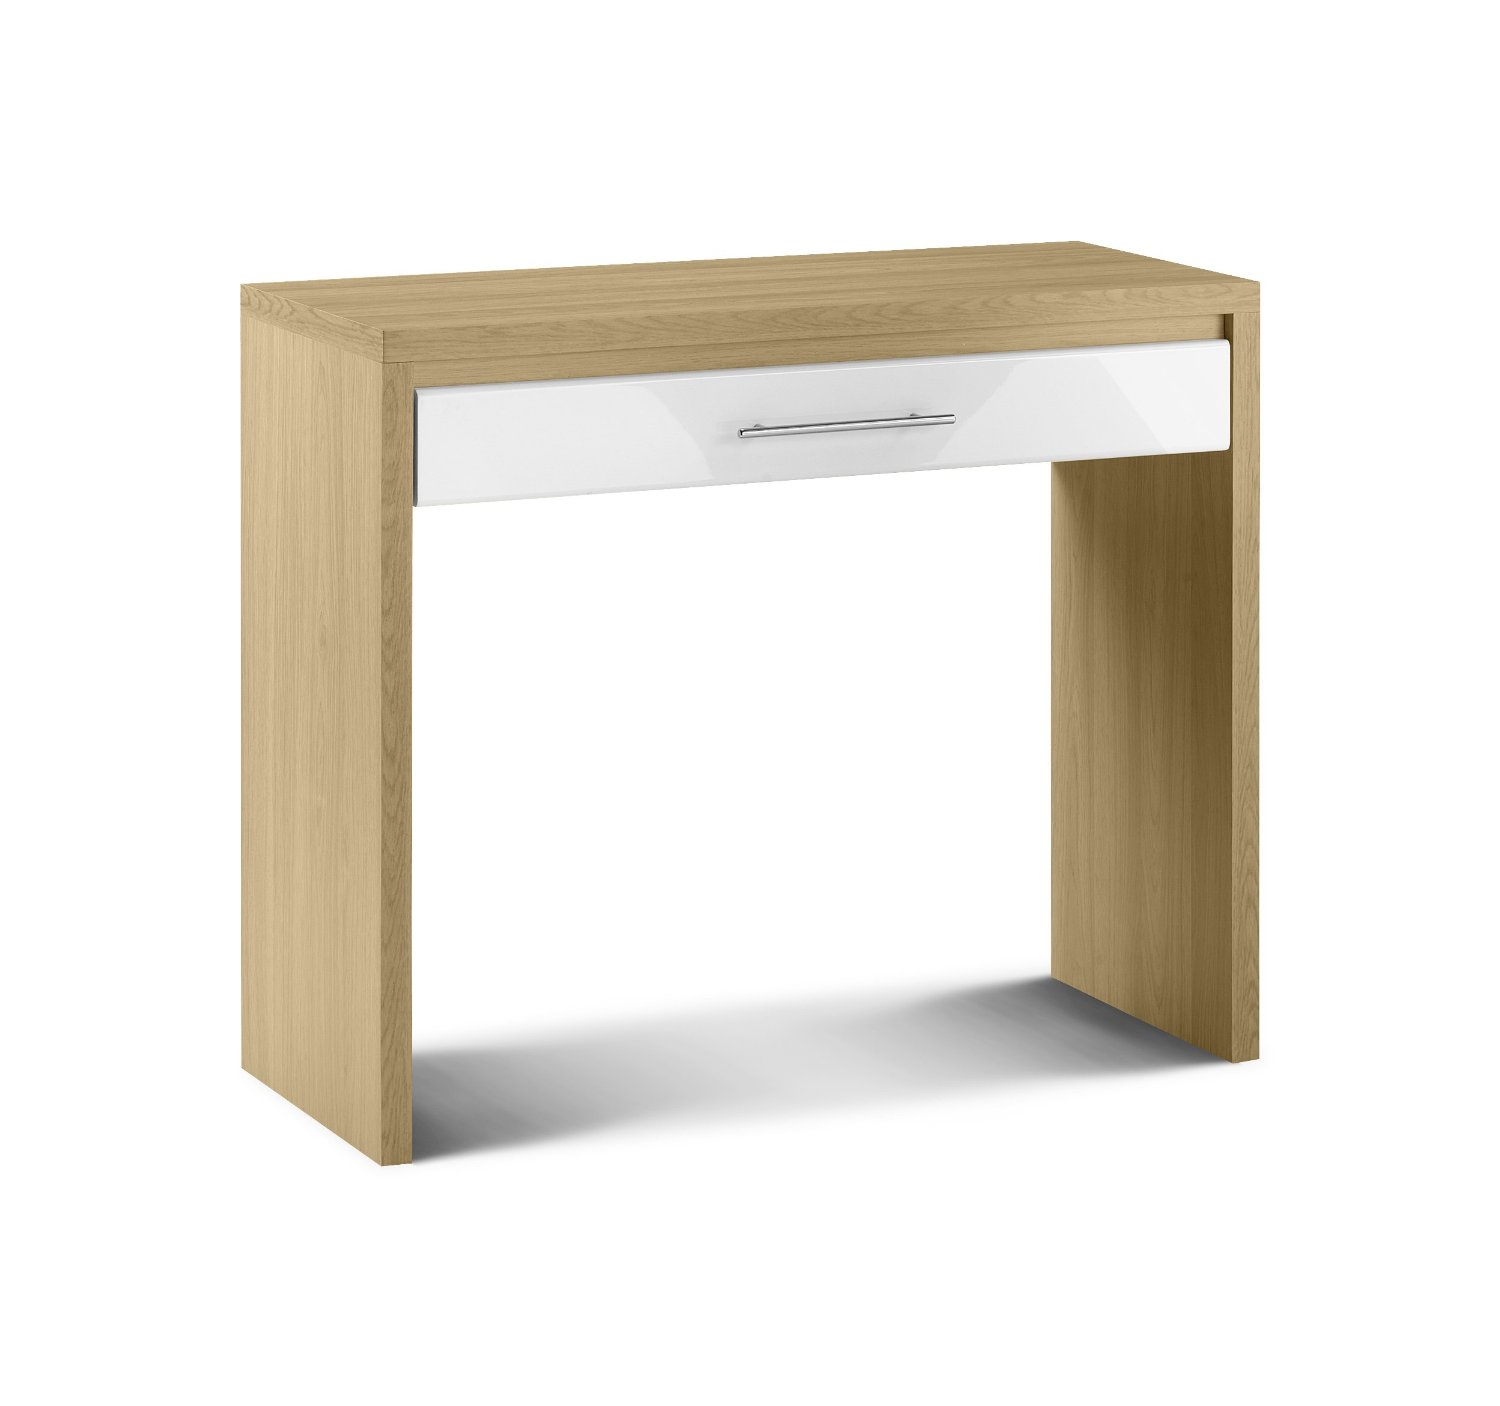 Photo of Julian bowen stockholm white high gloss with oak finish dressing table